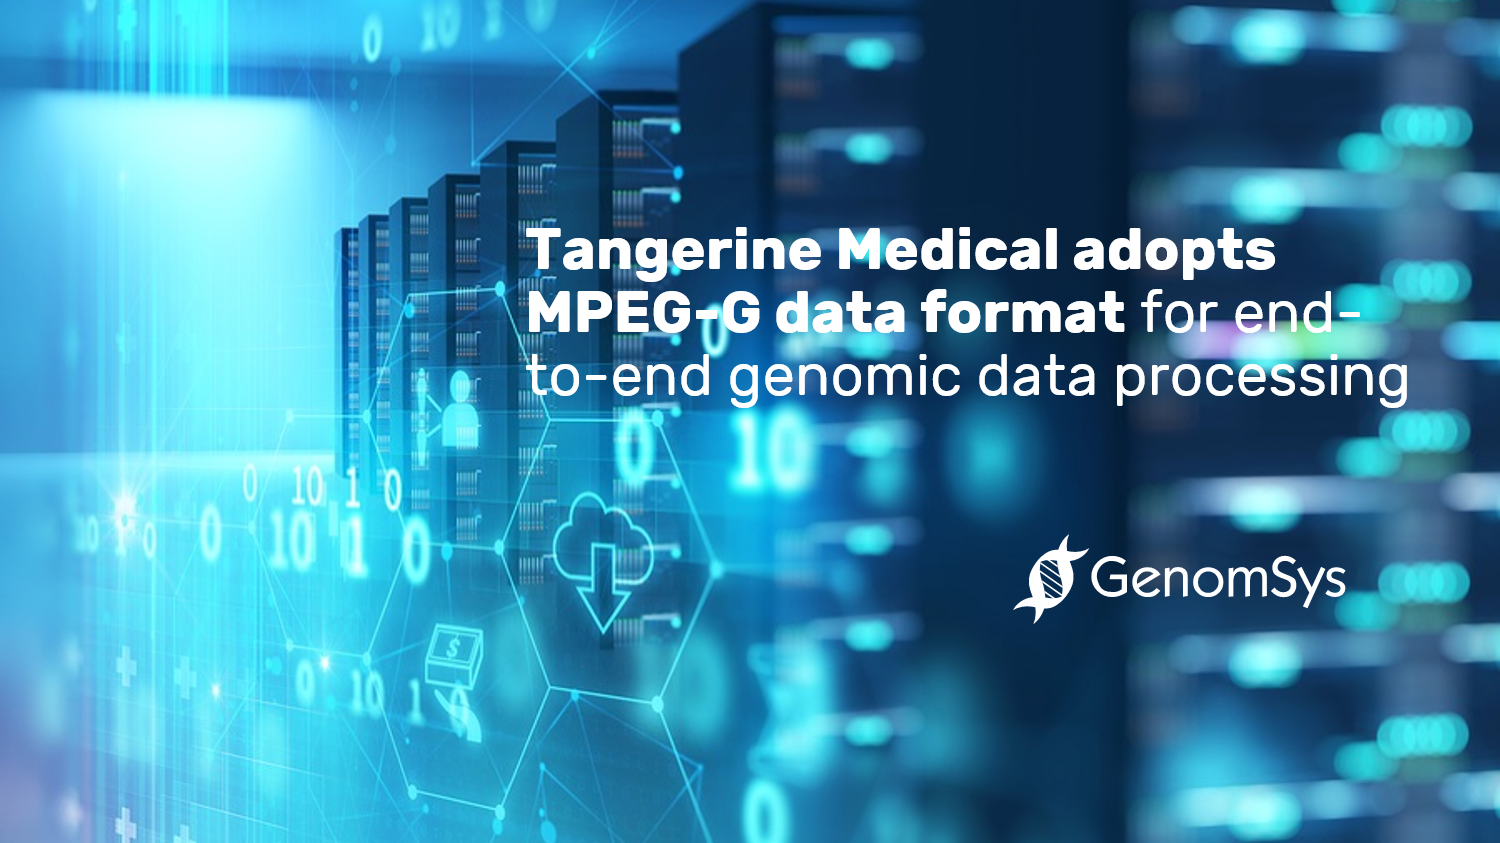 Tangerine Medical adopts MPEG-G data format for end-to-end genomic data processing